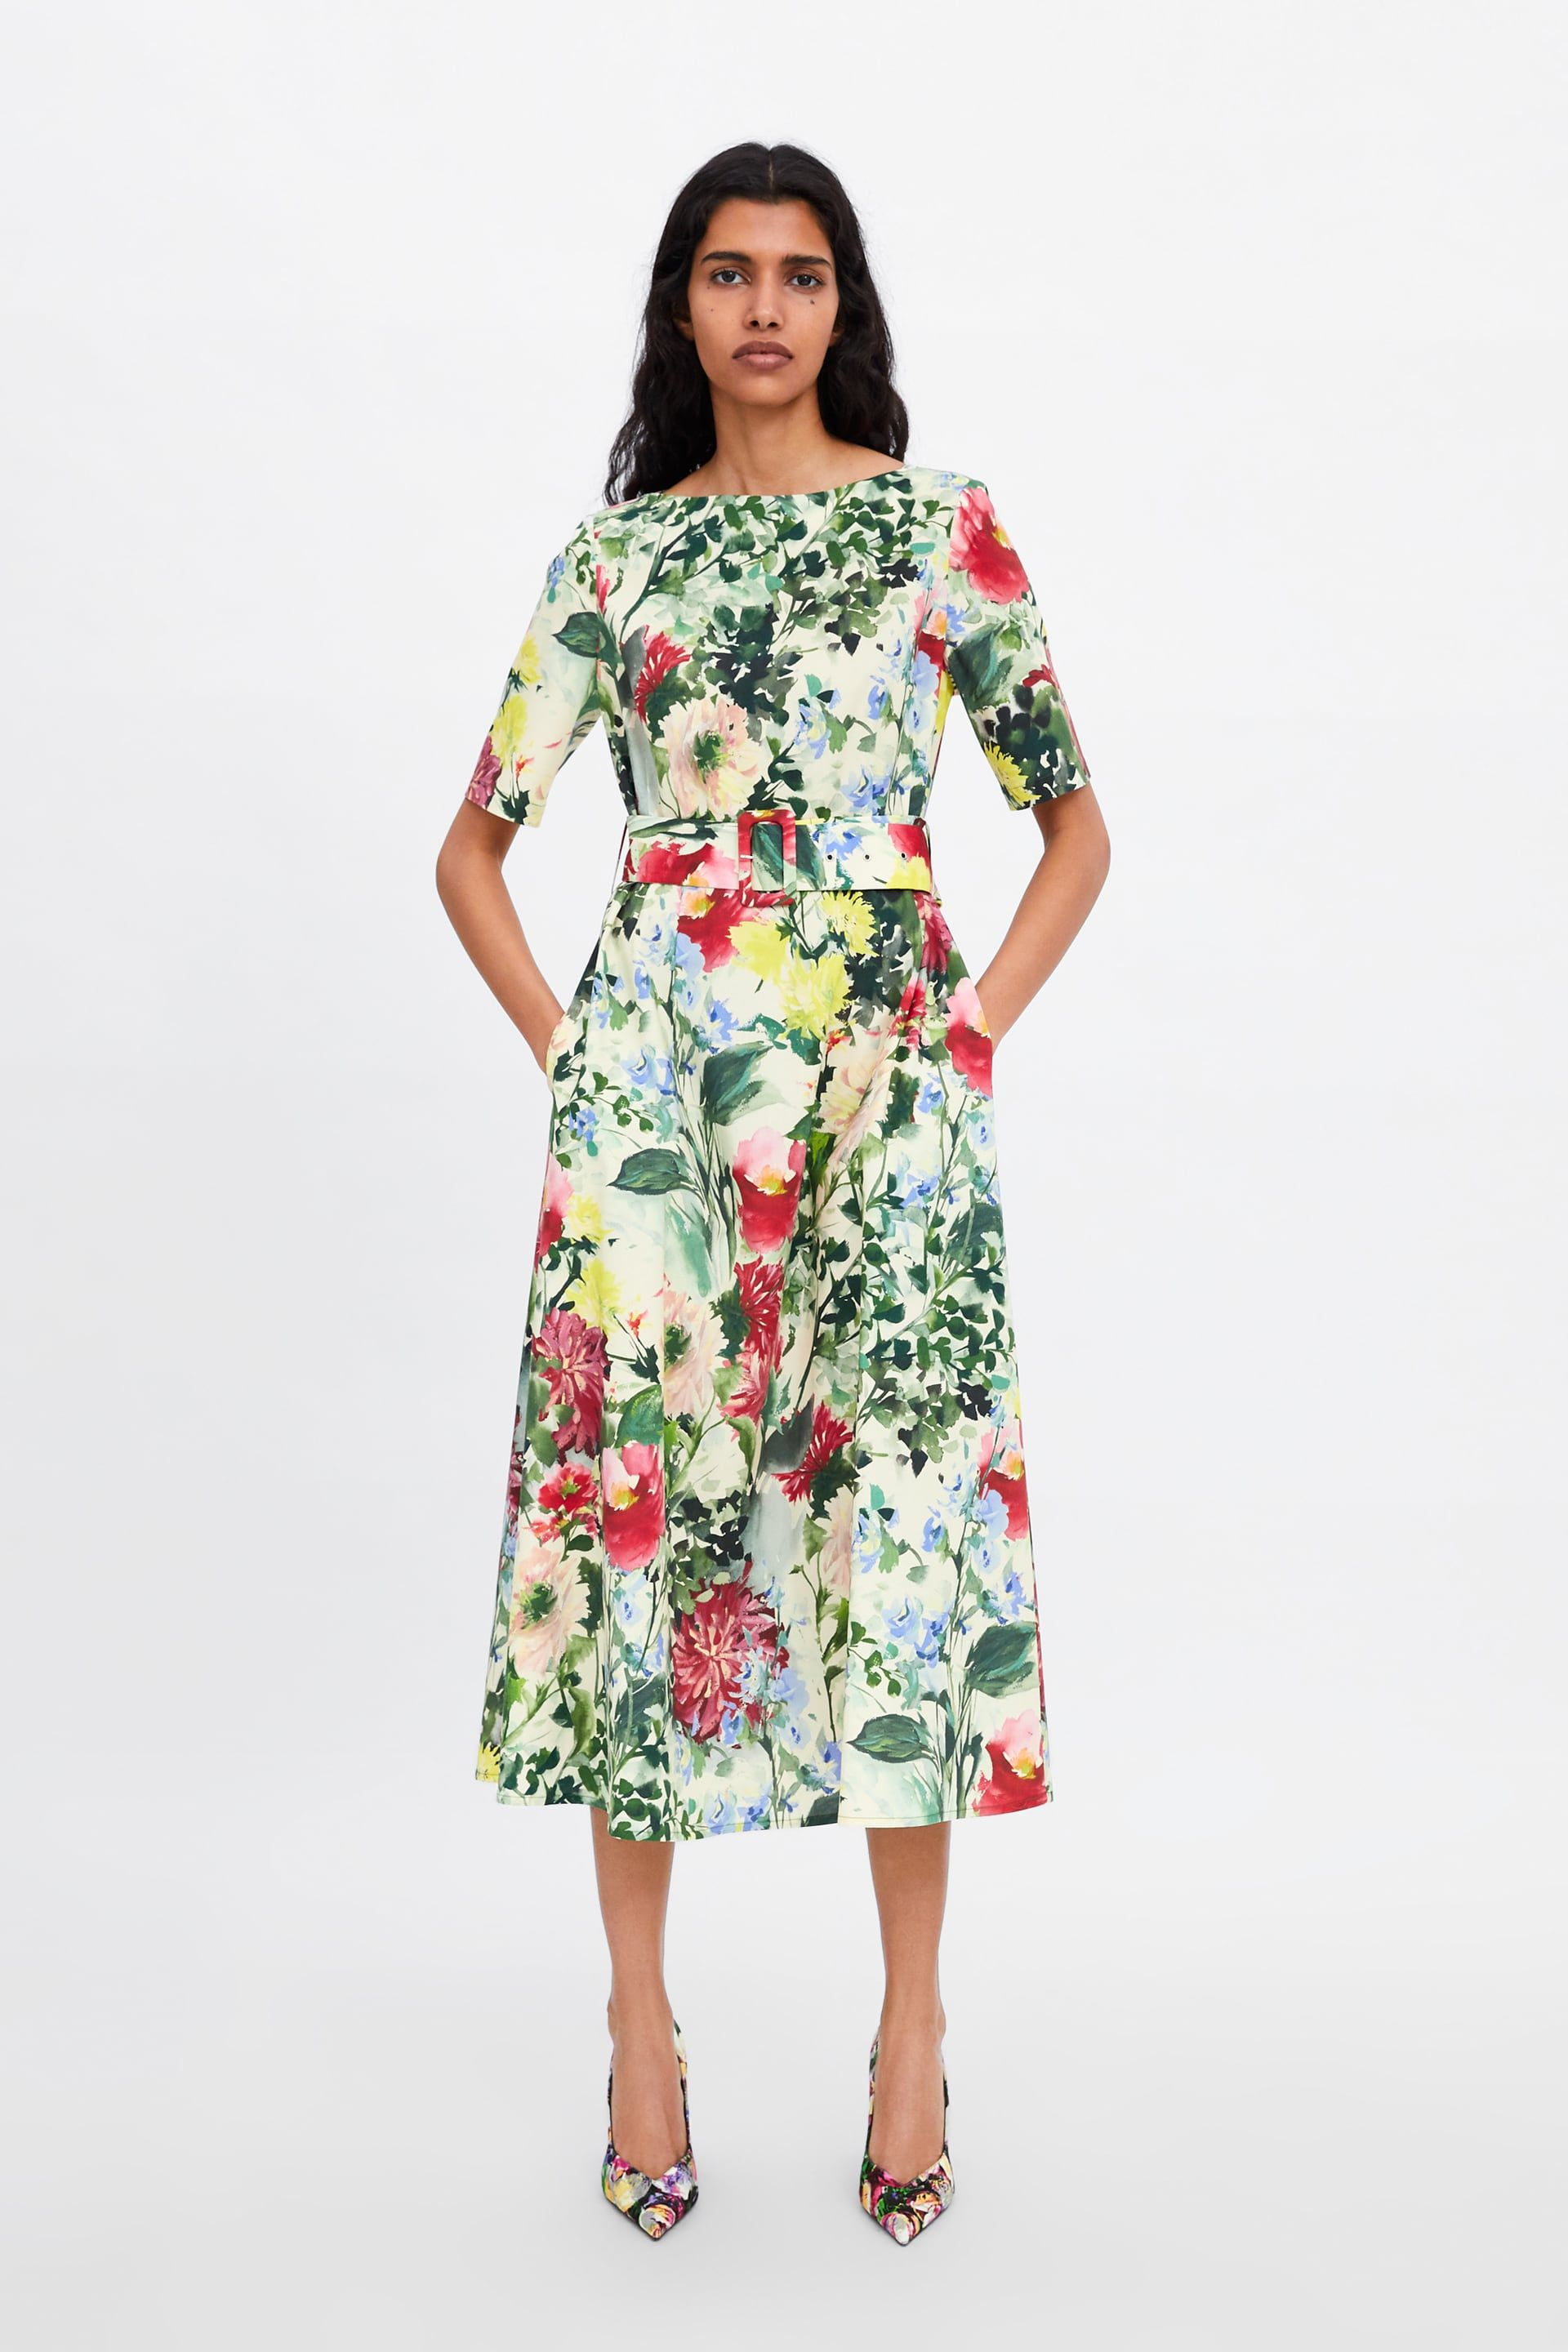 bc3c443a Floral print dress in 2019 | Spring / Summer Fashion 2019 | Floral ...